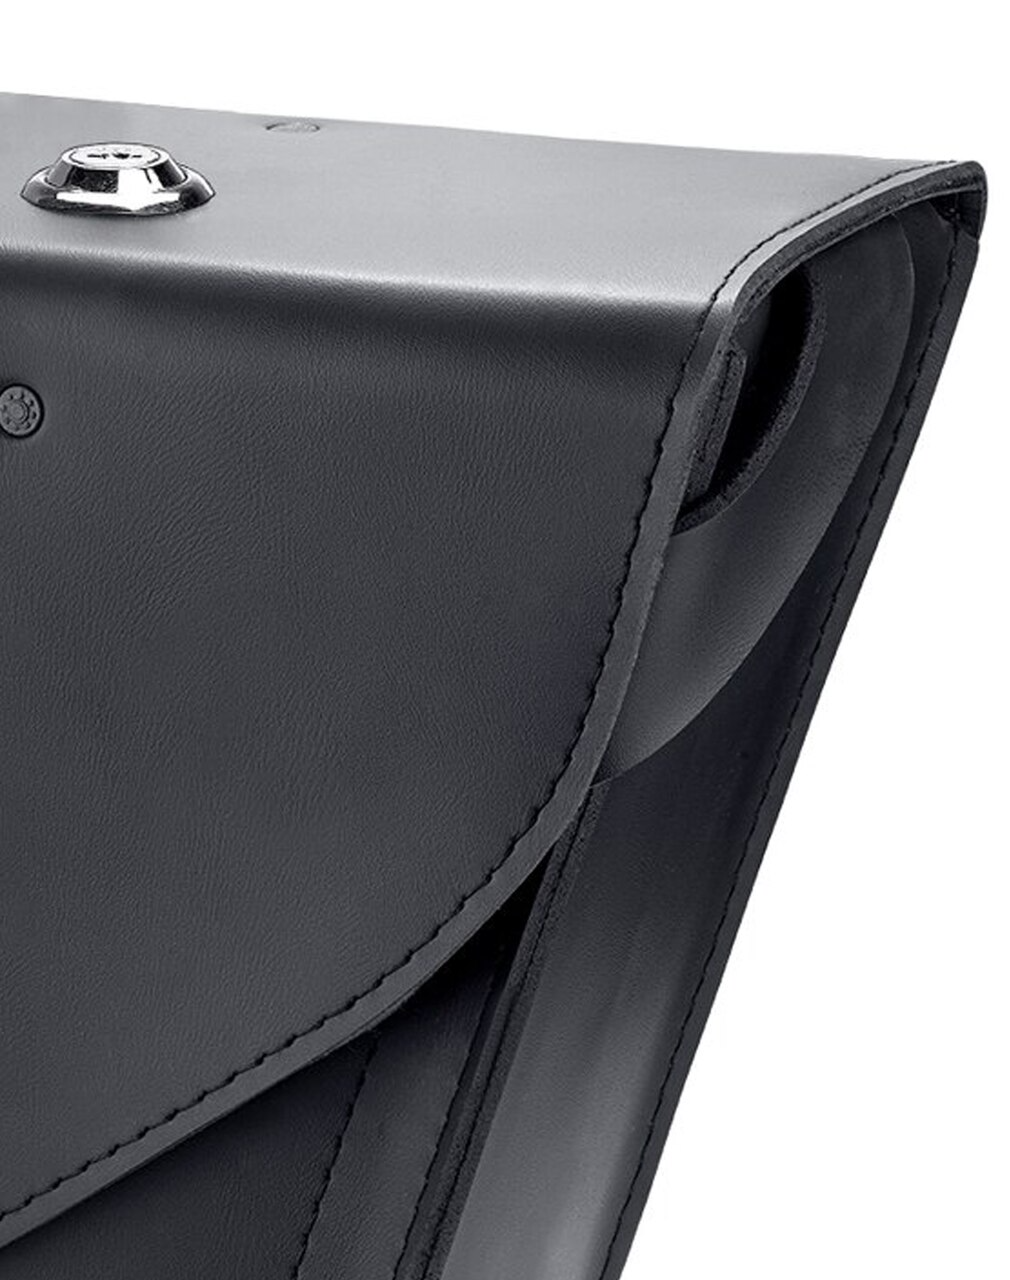 VikingBags Dark Age Leather Motorcycle Saddlebags for Harley Sportster Closeup View